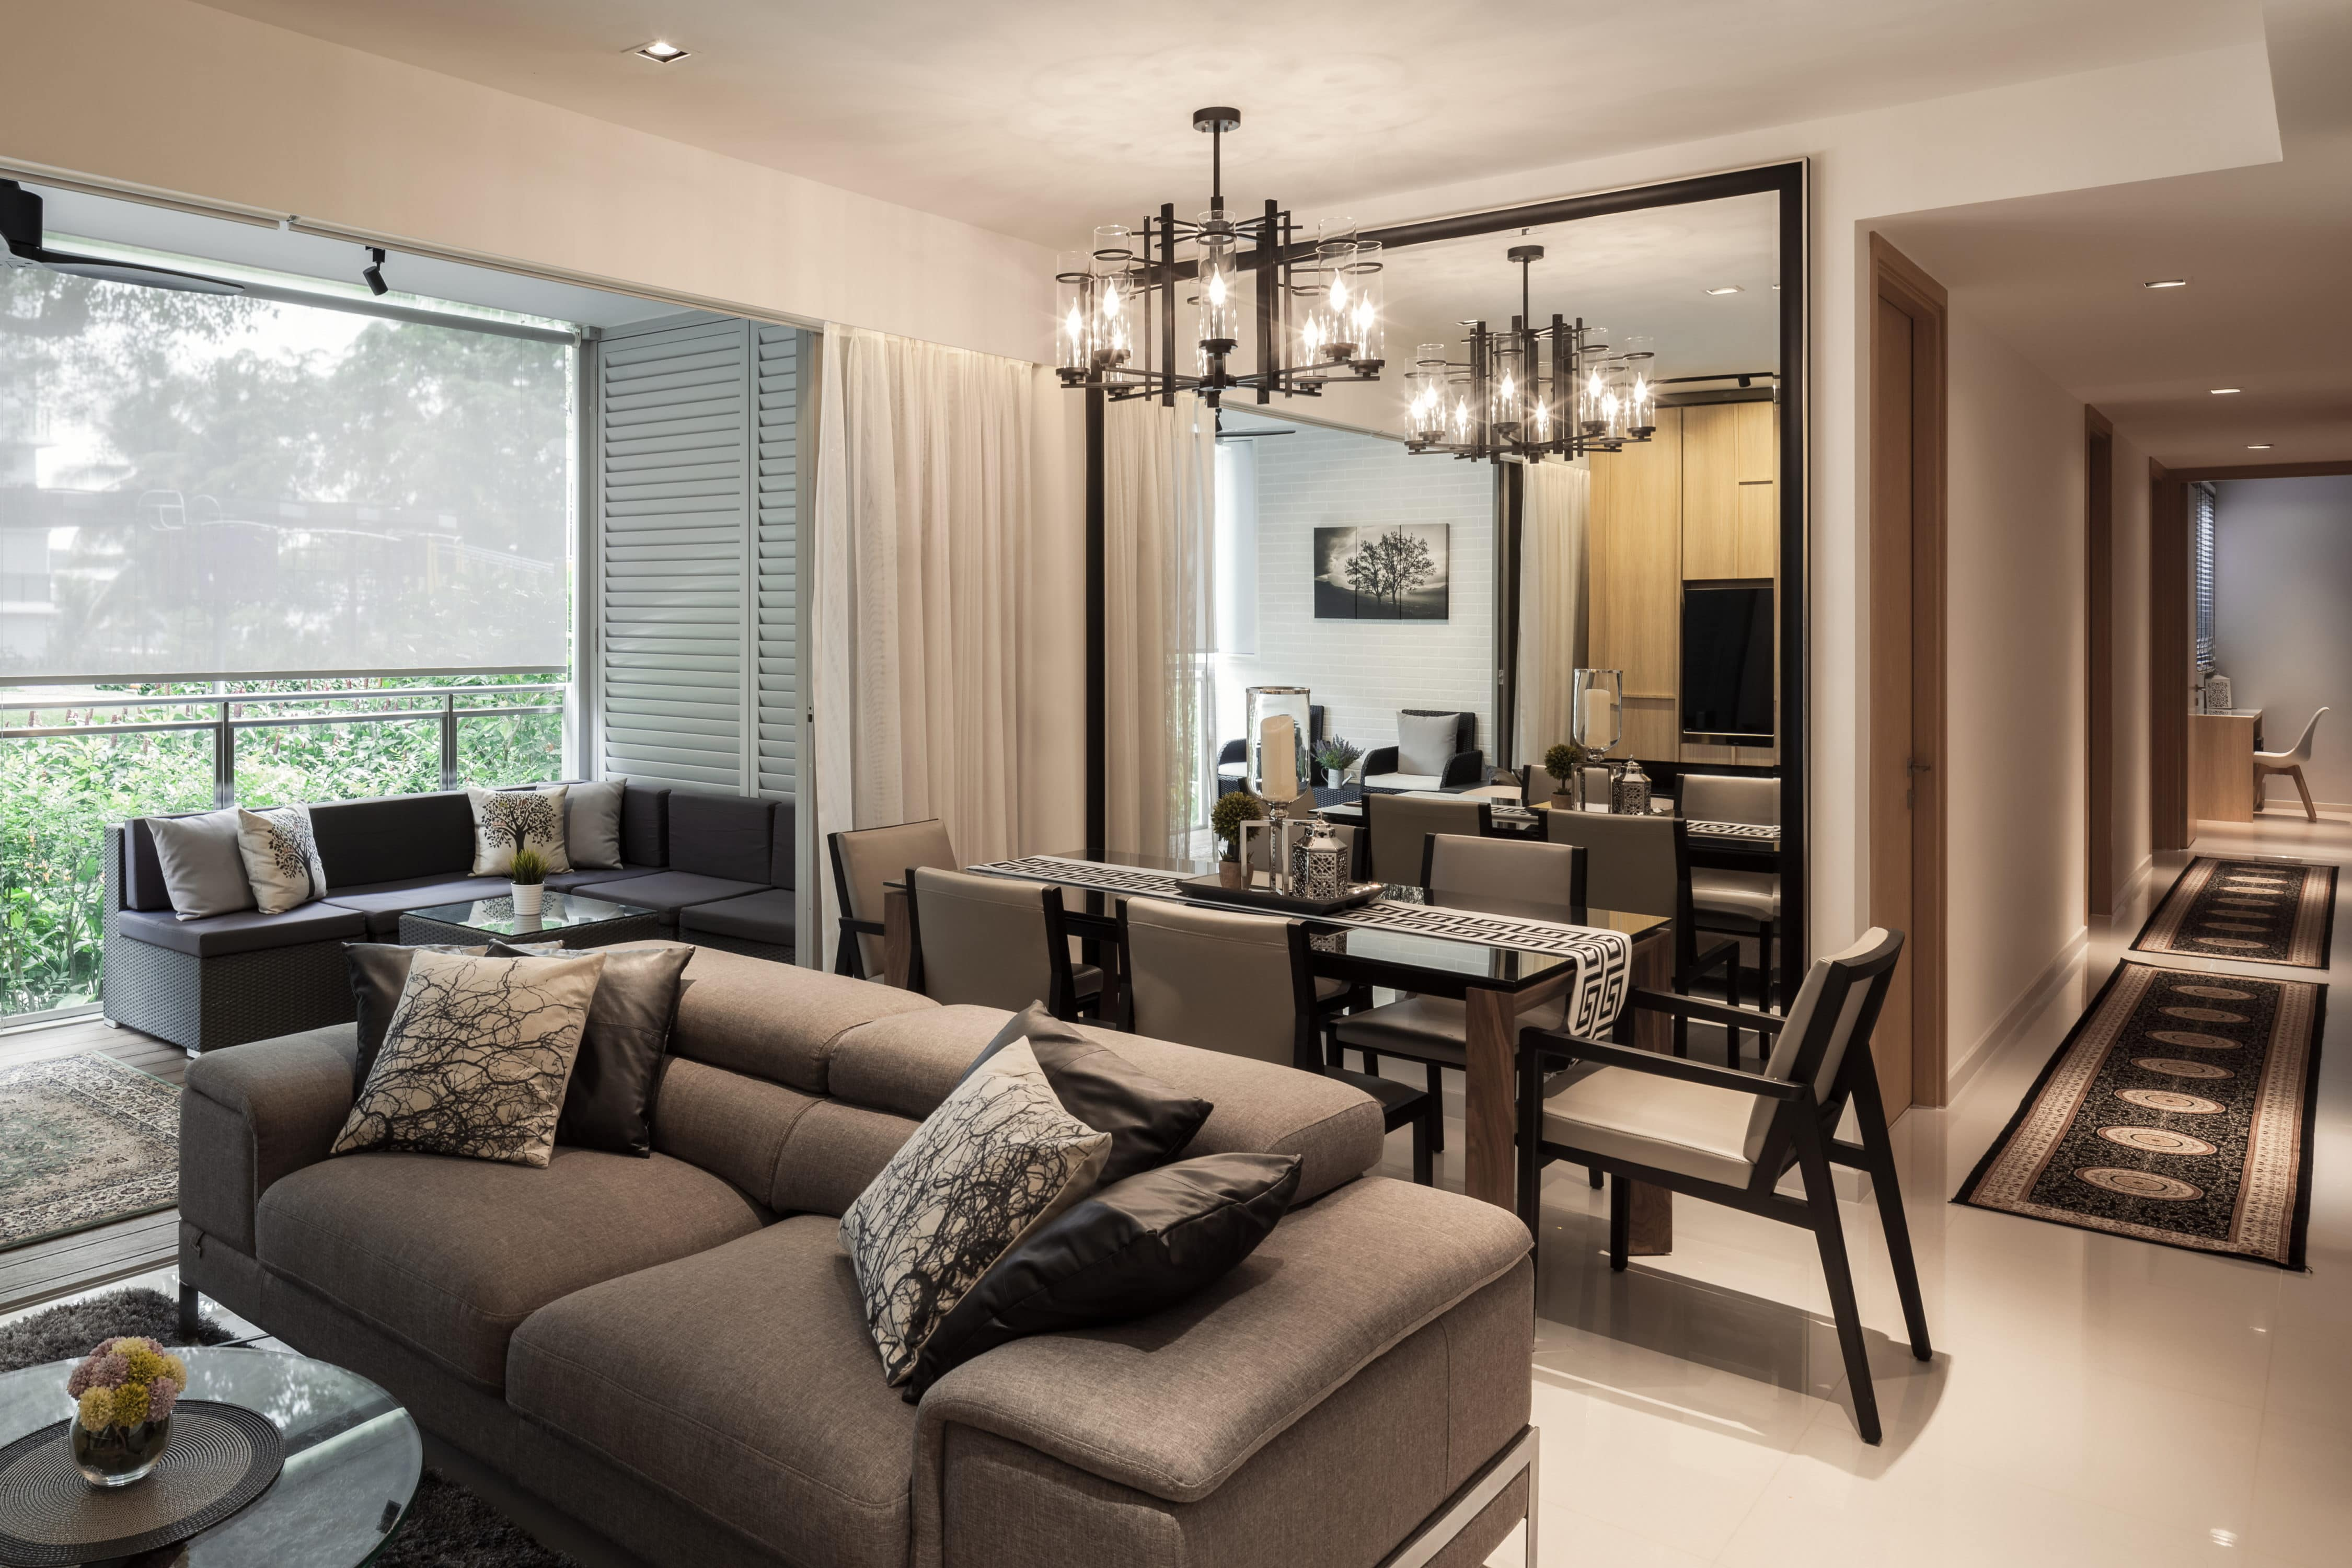 Clean and stylish modern interior design - How to be an interior designer ...